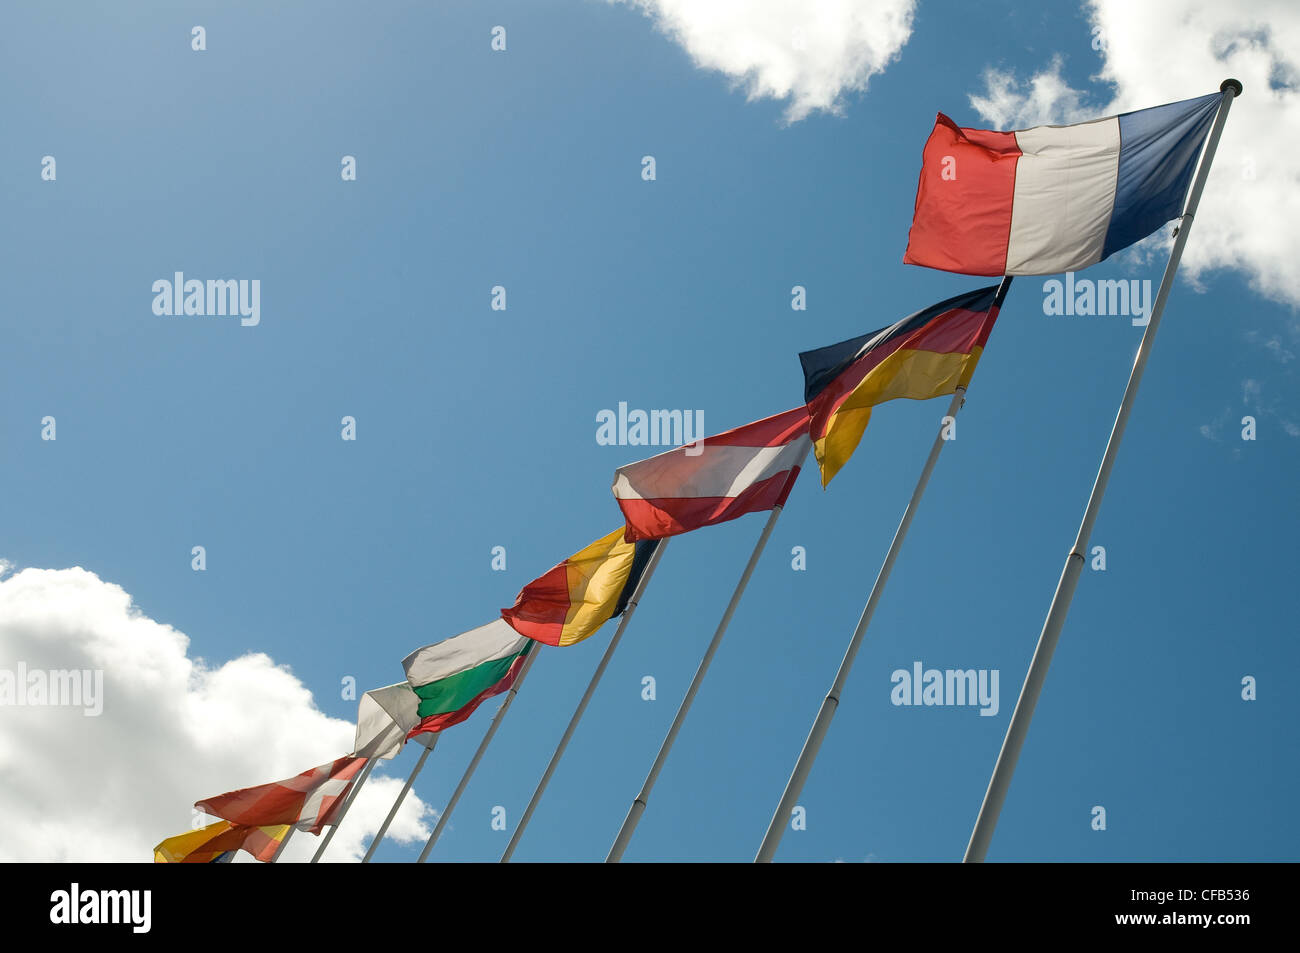 European flags in the sky. - Stock Image